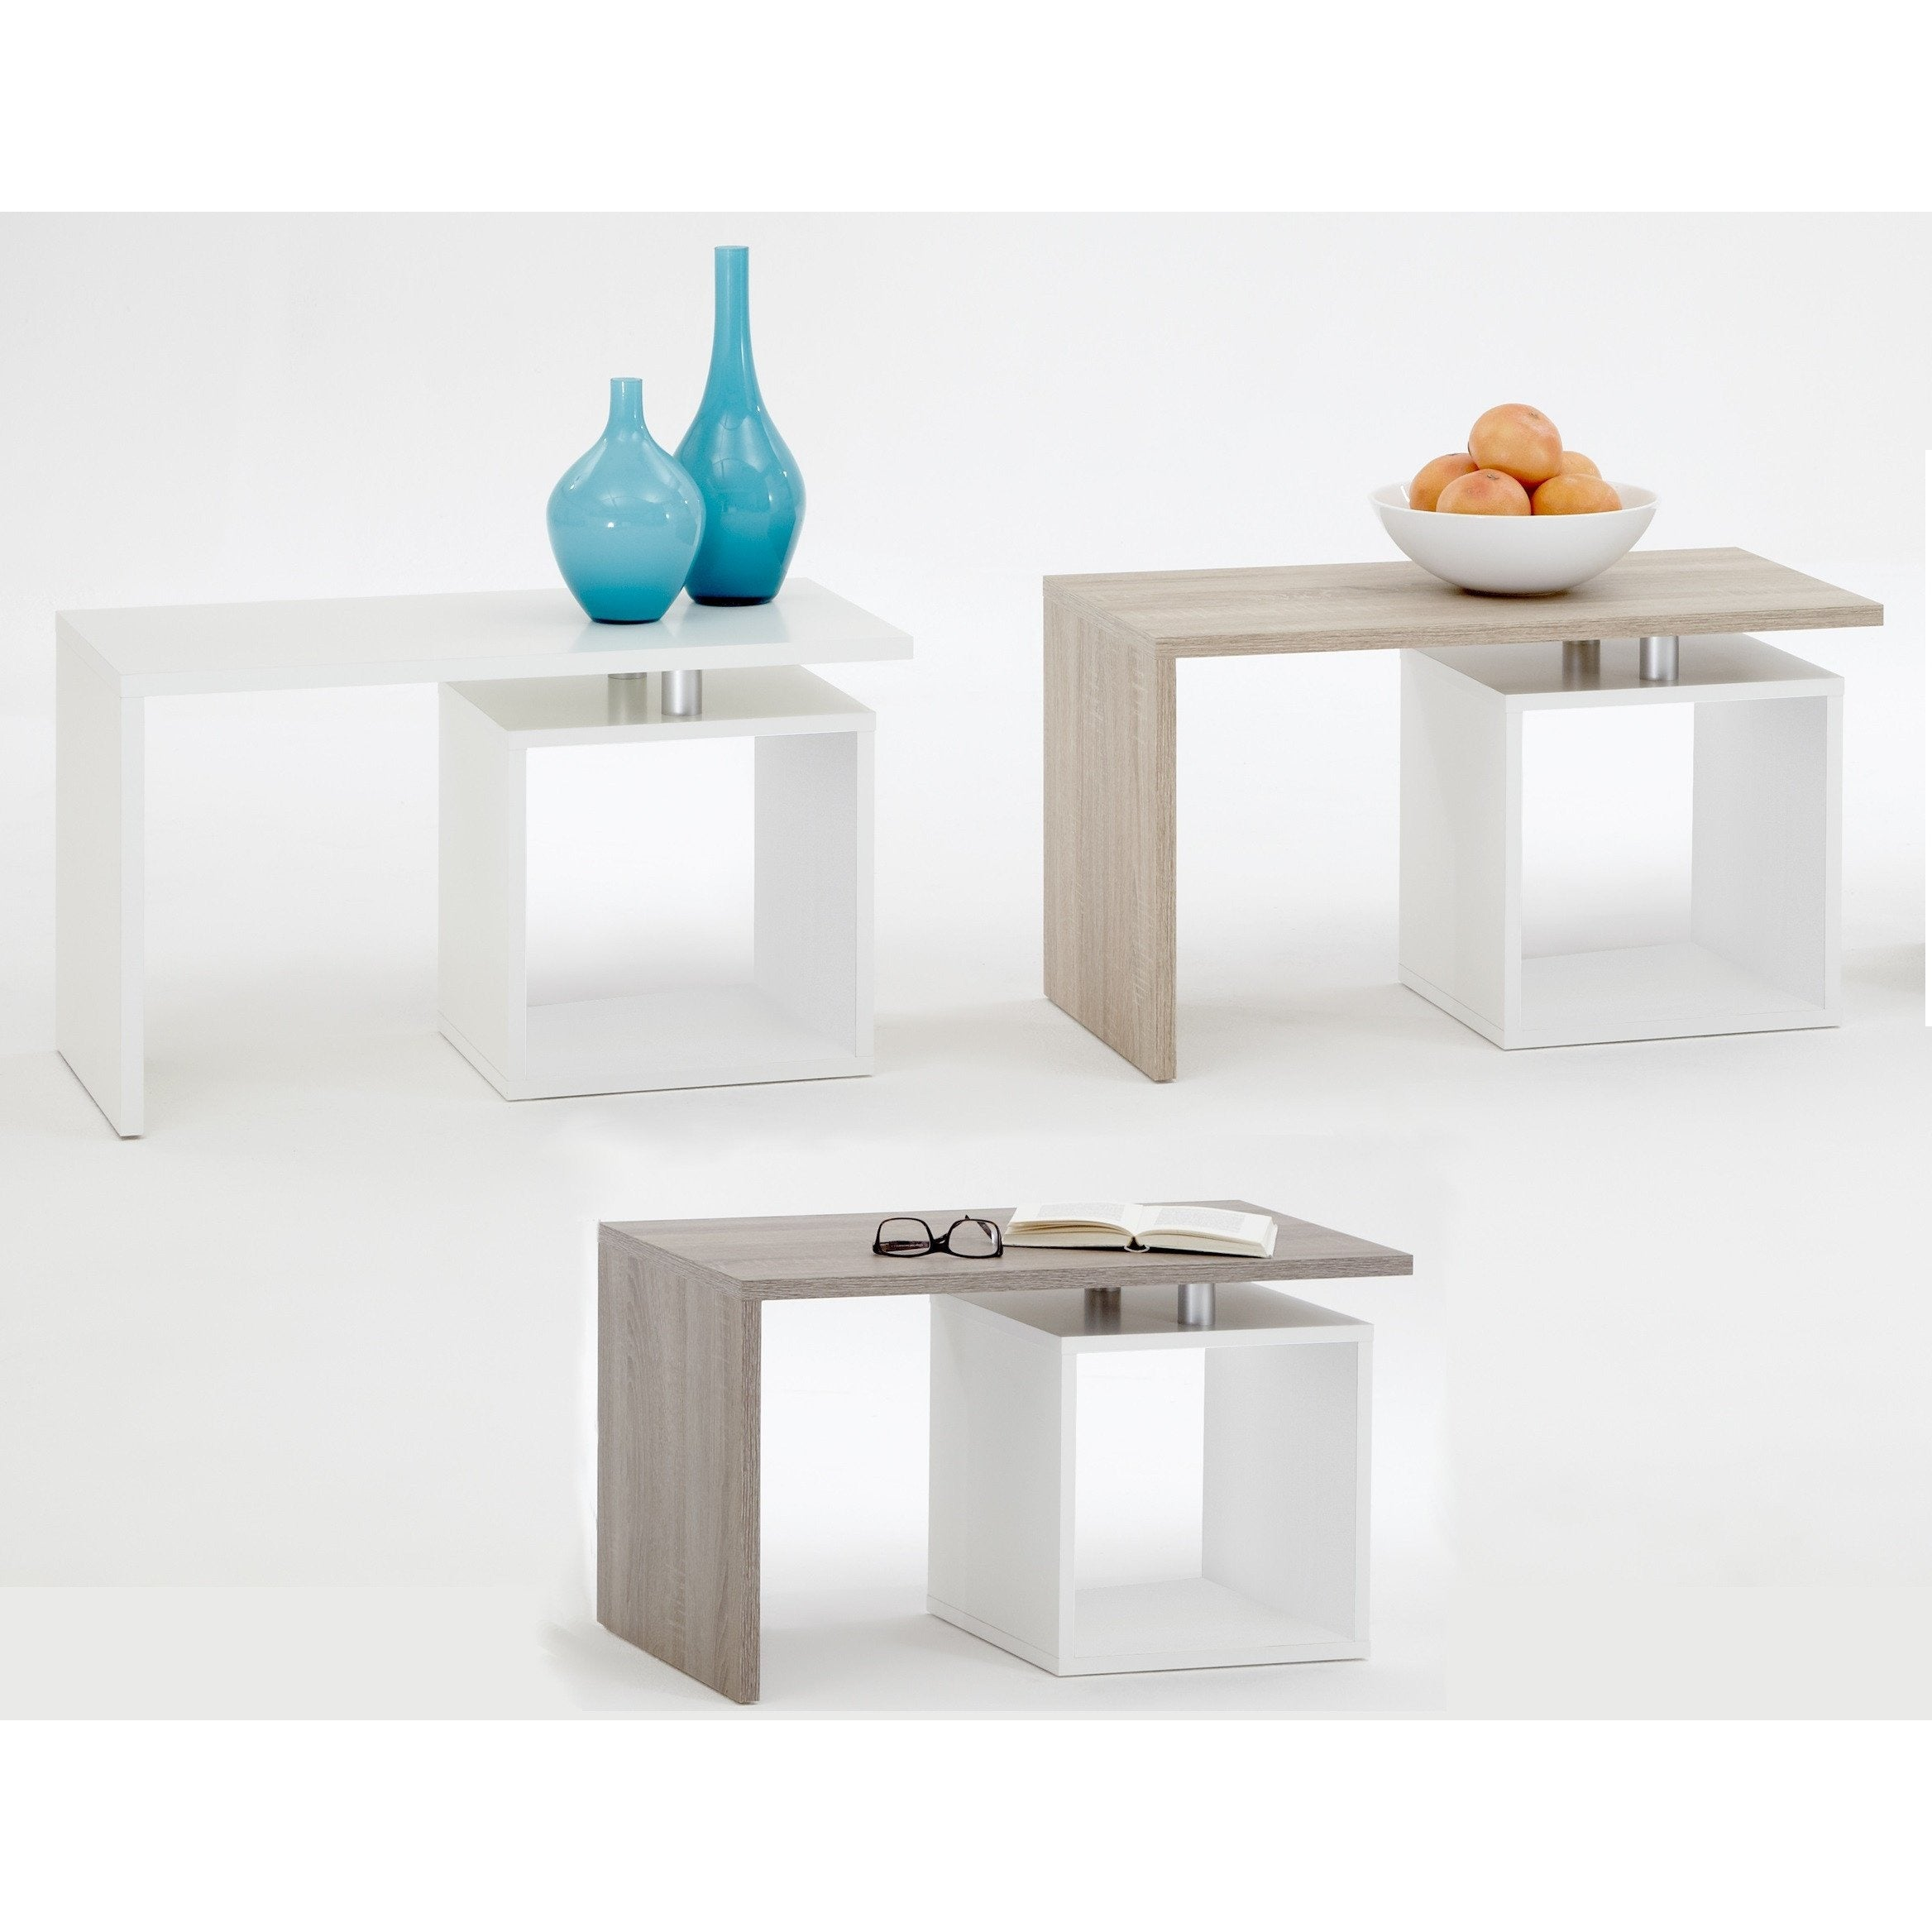 "klara"" Designer Coffee Side End Table Mega Range Hifi TV"